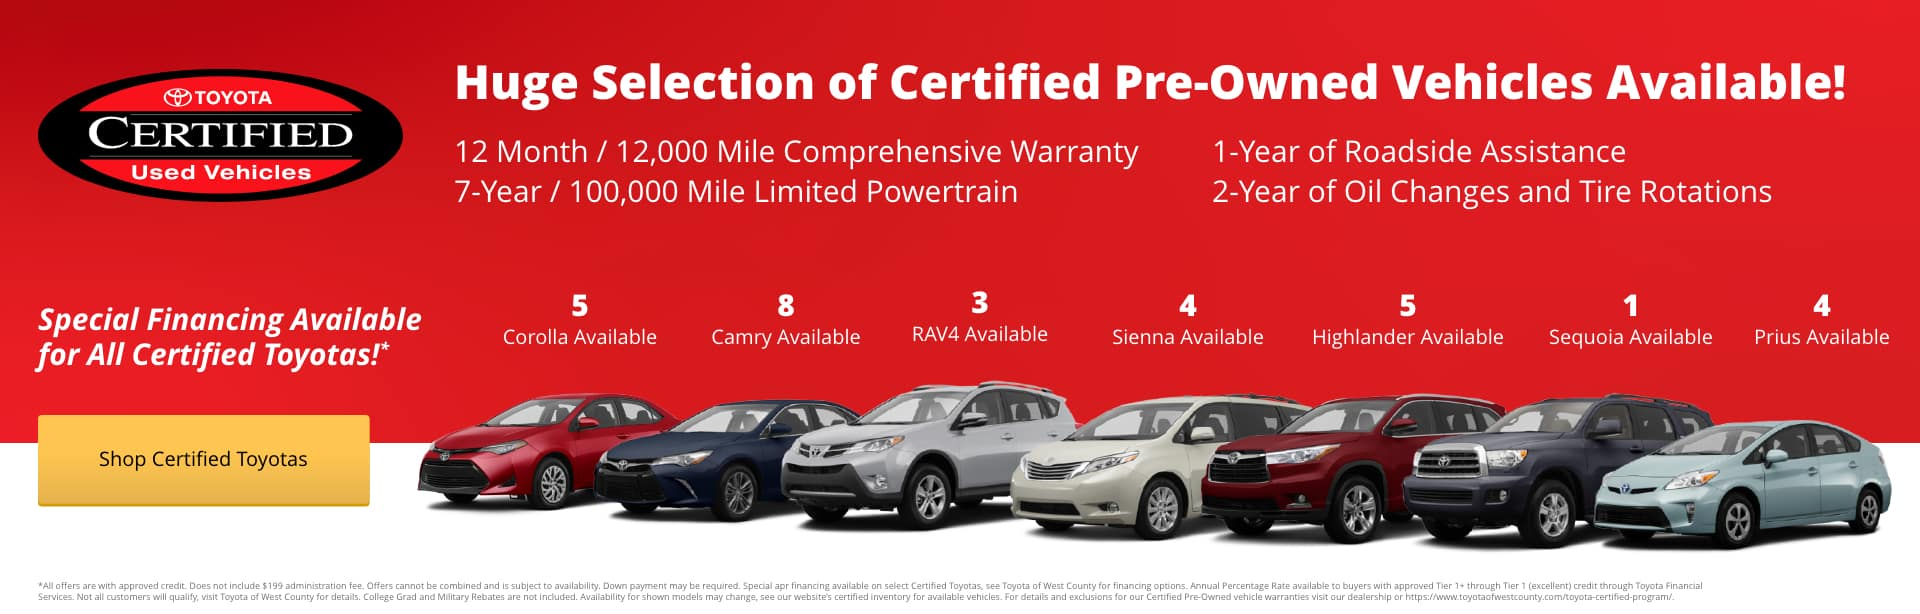 1.9% APR financing for 60 months on Certified Pre-Owned Camrys, Corollas and RAV4s